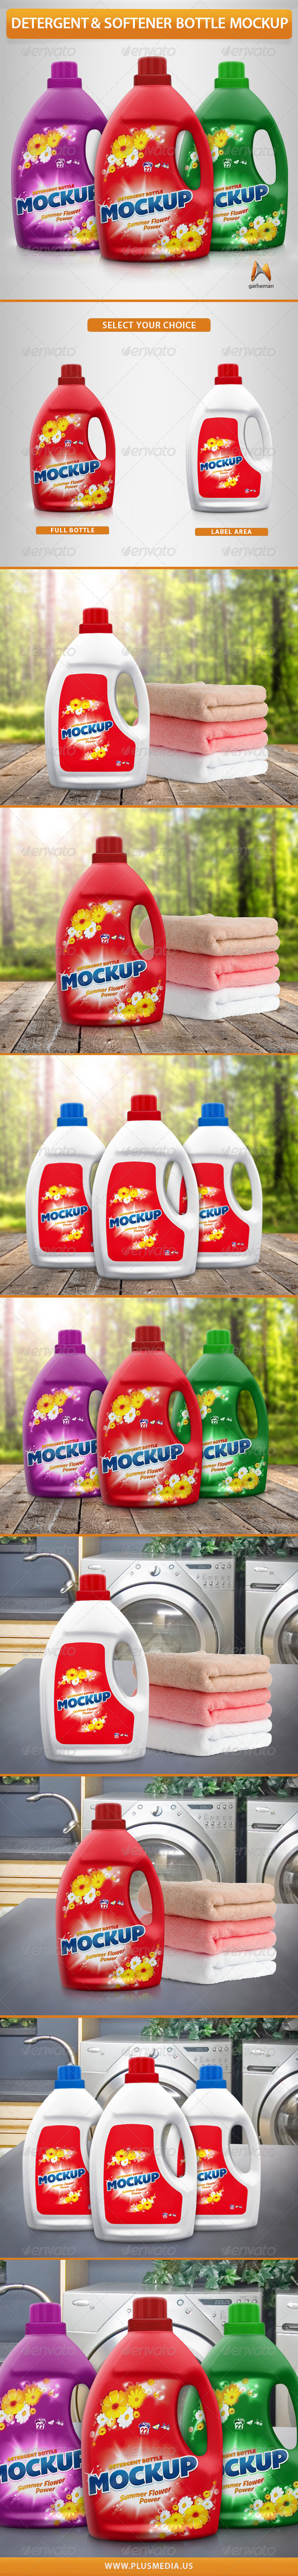 GraphicRiver Detergent & Softener Bottle Mockup 7324610